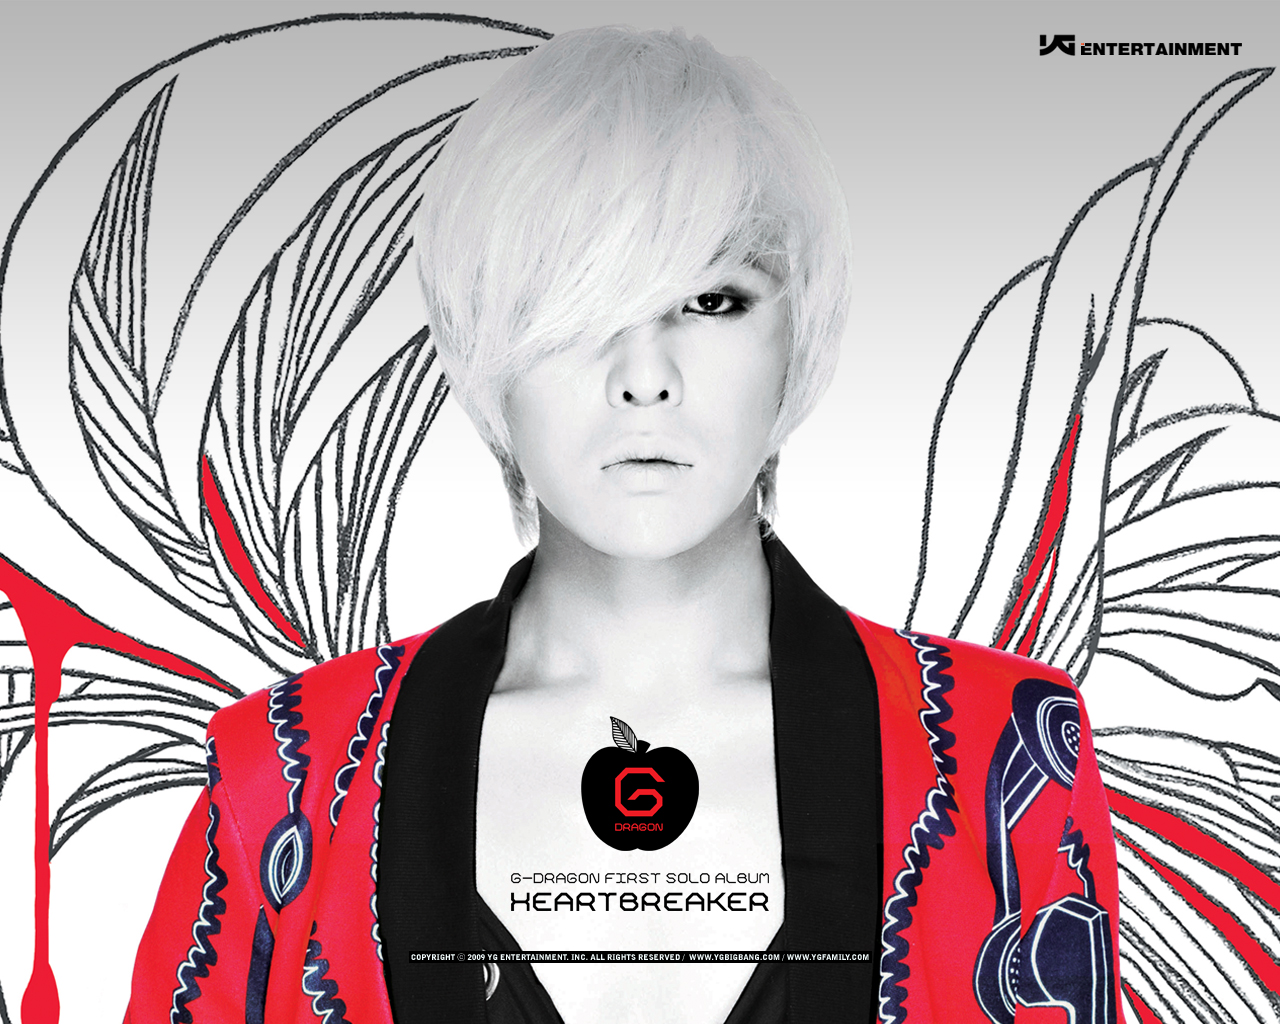 Heartbreaker Wallpaper - GD Wallpaper (31865674) - Fanpop